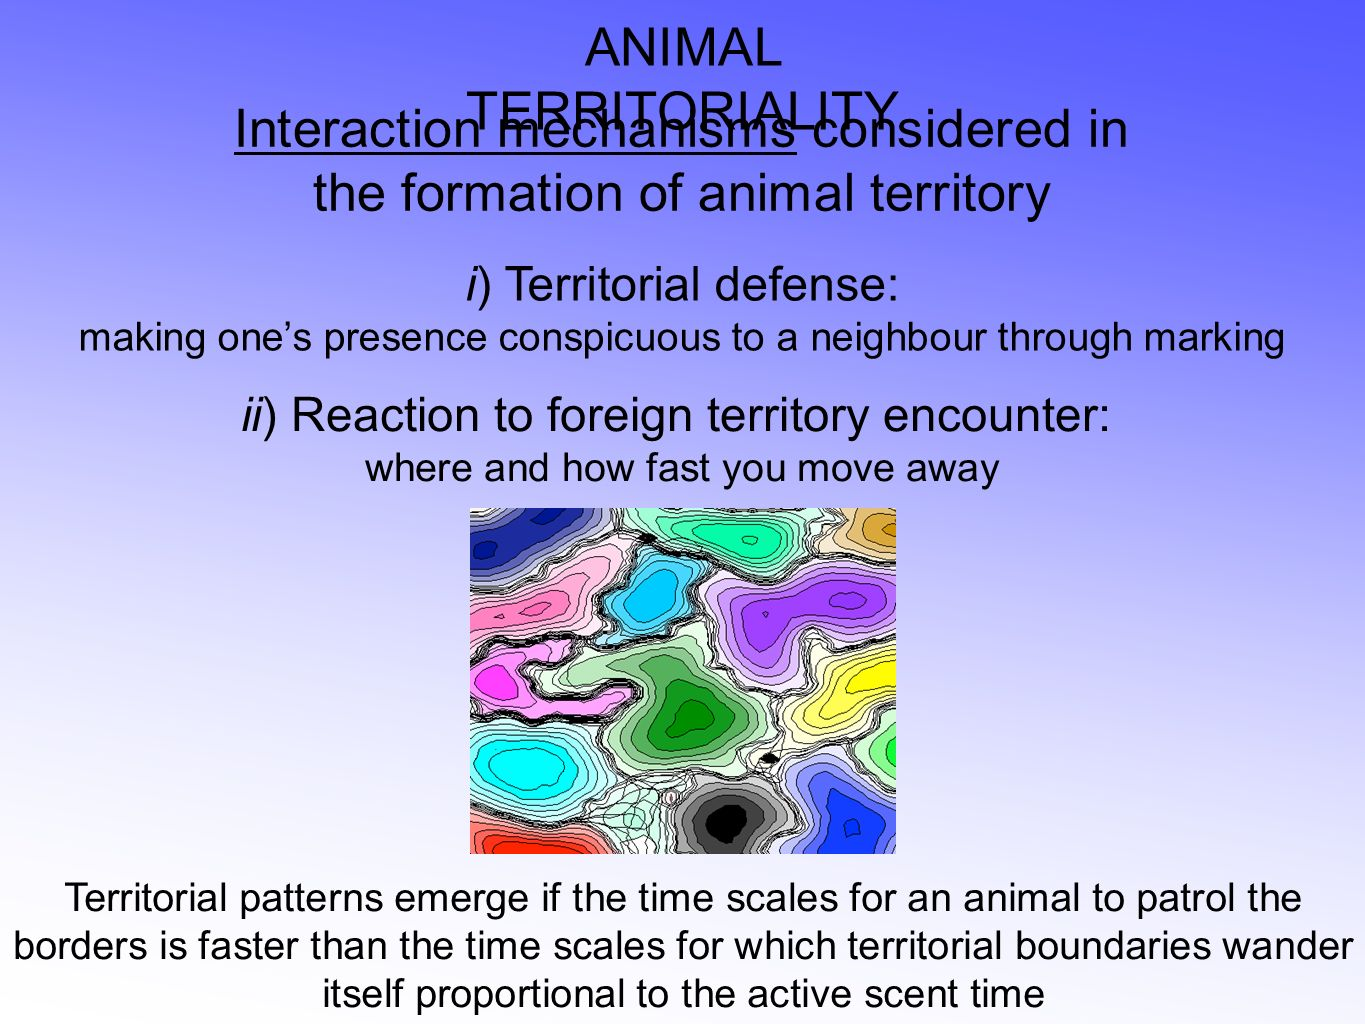 ANIMAL TERRITORIALITY Interaction mechanisms considered in the formation of animal territory i) Territorial defense: making ones presence conspicuous to a neighbour through marking ii) Reaction to foreign territory encounter: where and how fast you move away Territorial patterns emerge if the time scales for an animal to patrol the borders is faster than the time scales for which territorial boundaries wander itself proportional to the active scent time